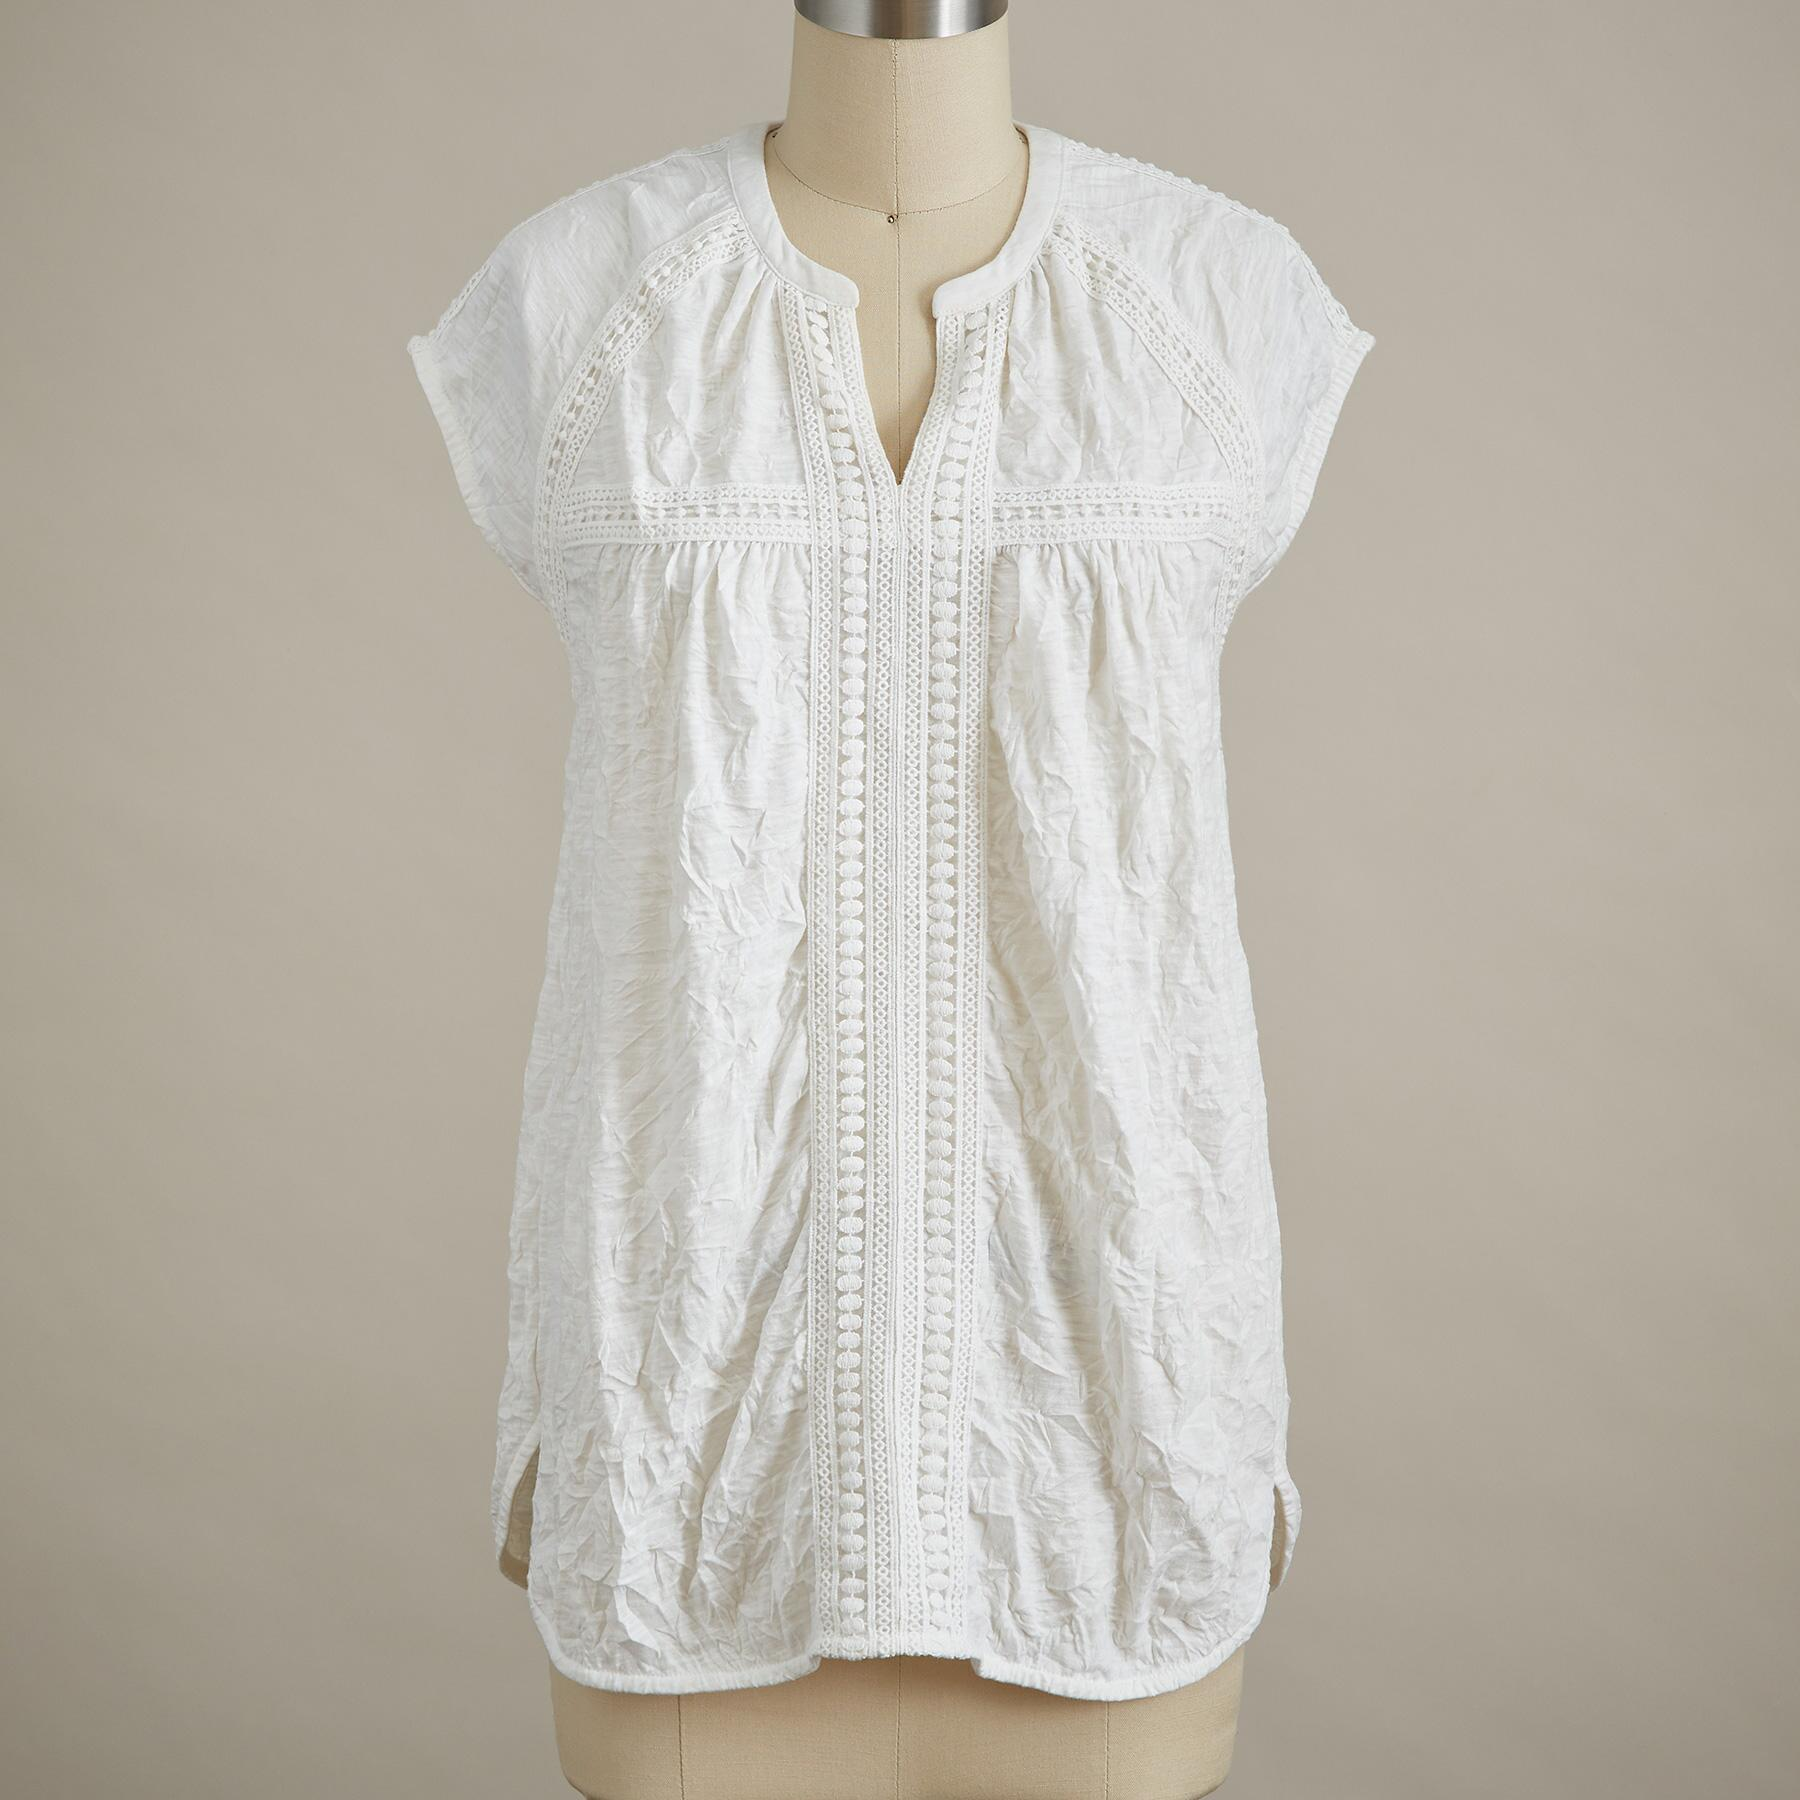 ROMANCE TEXTURED SHORT-SLEEVE TEE - PETITE: View 2